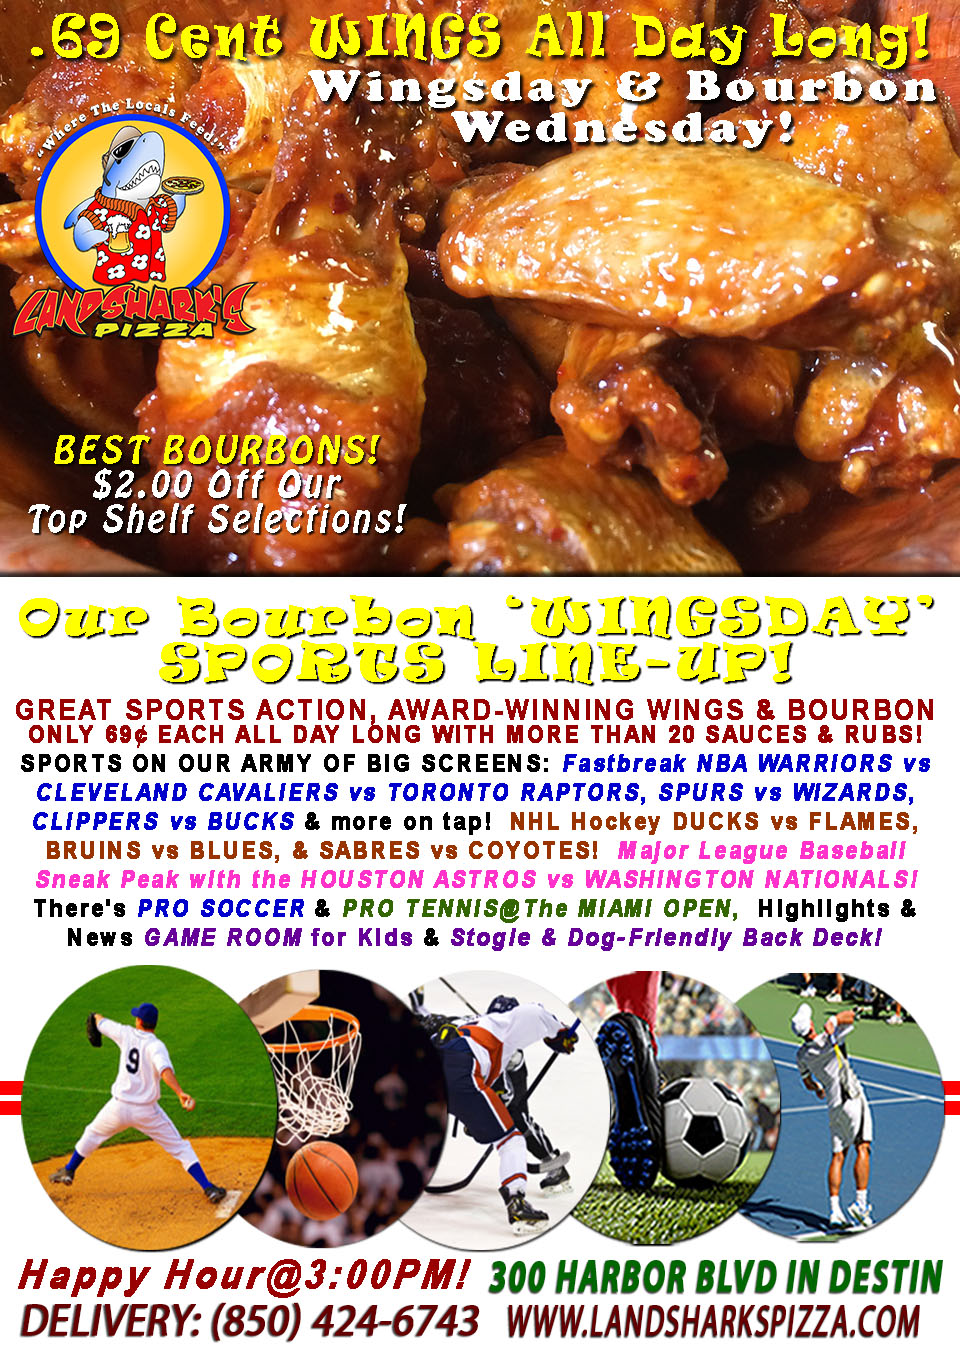 Landshark's WINGSDAY Wings only 69¢ & $2 OFF ALL BOURBONS plus Hoops, Hockey & ASTROS vs NATIONALS MLB!